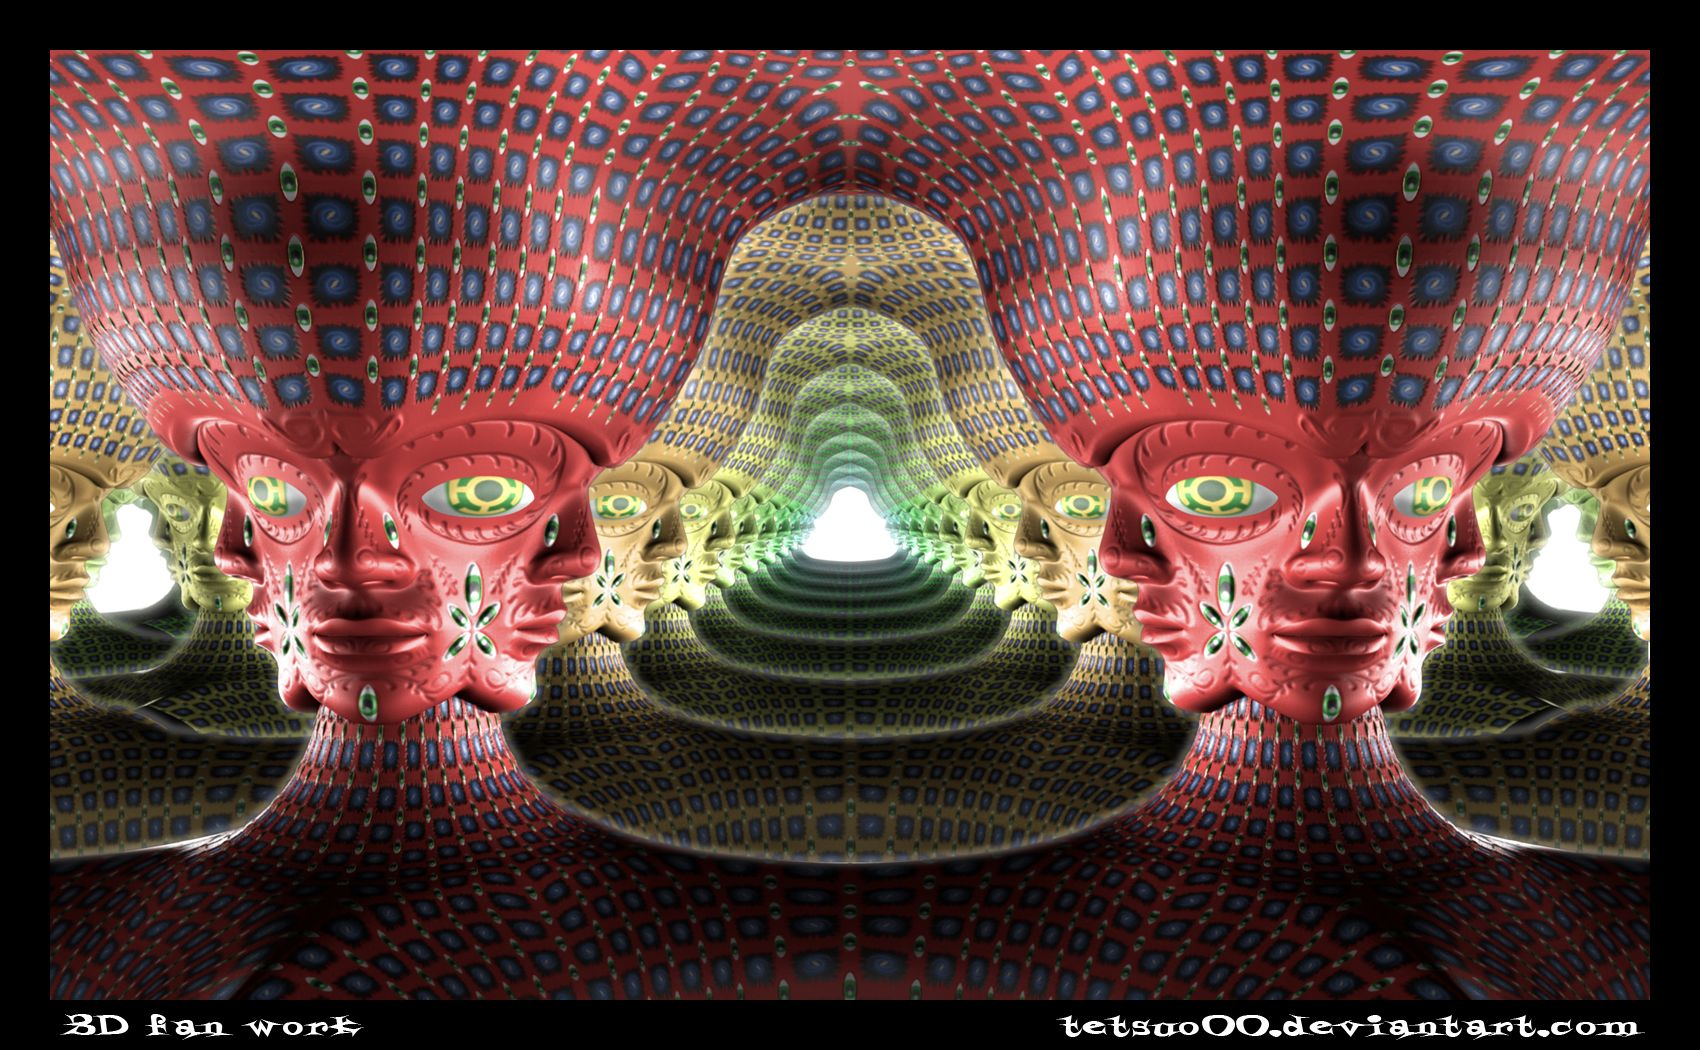 Energy Implants And How To Remove Them Alex Gray Art Psychedelic Art Visionary Art